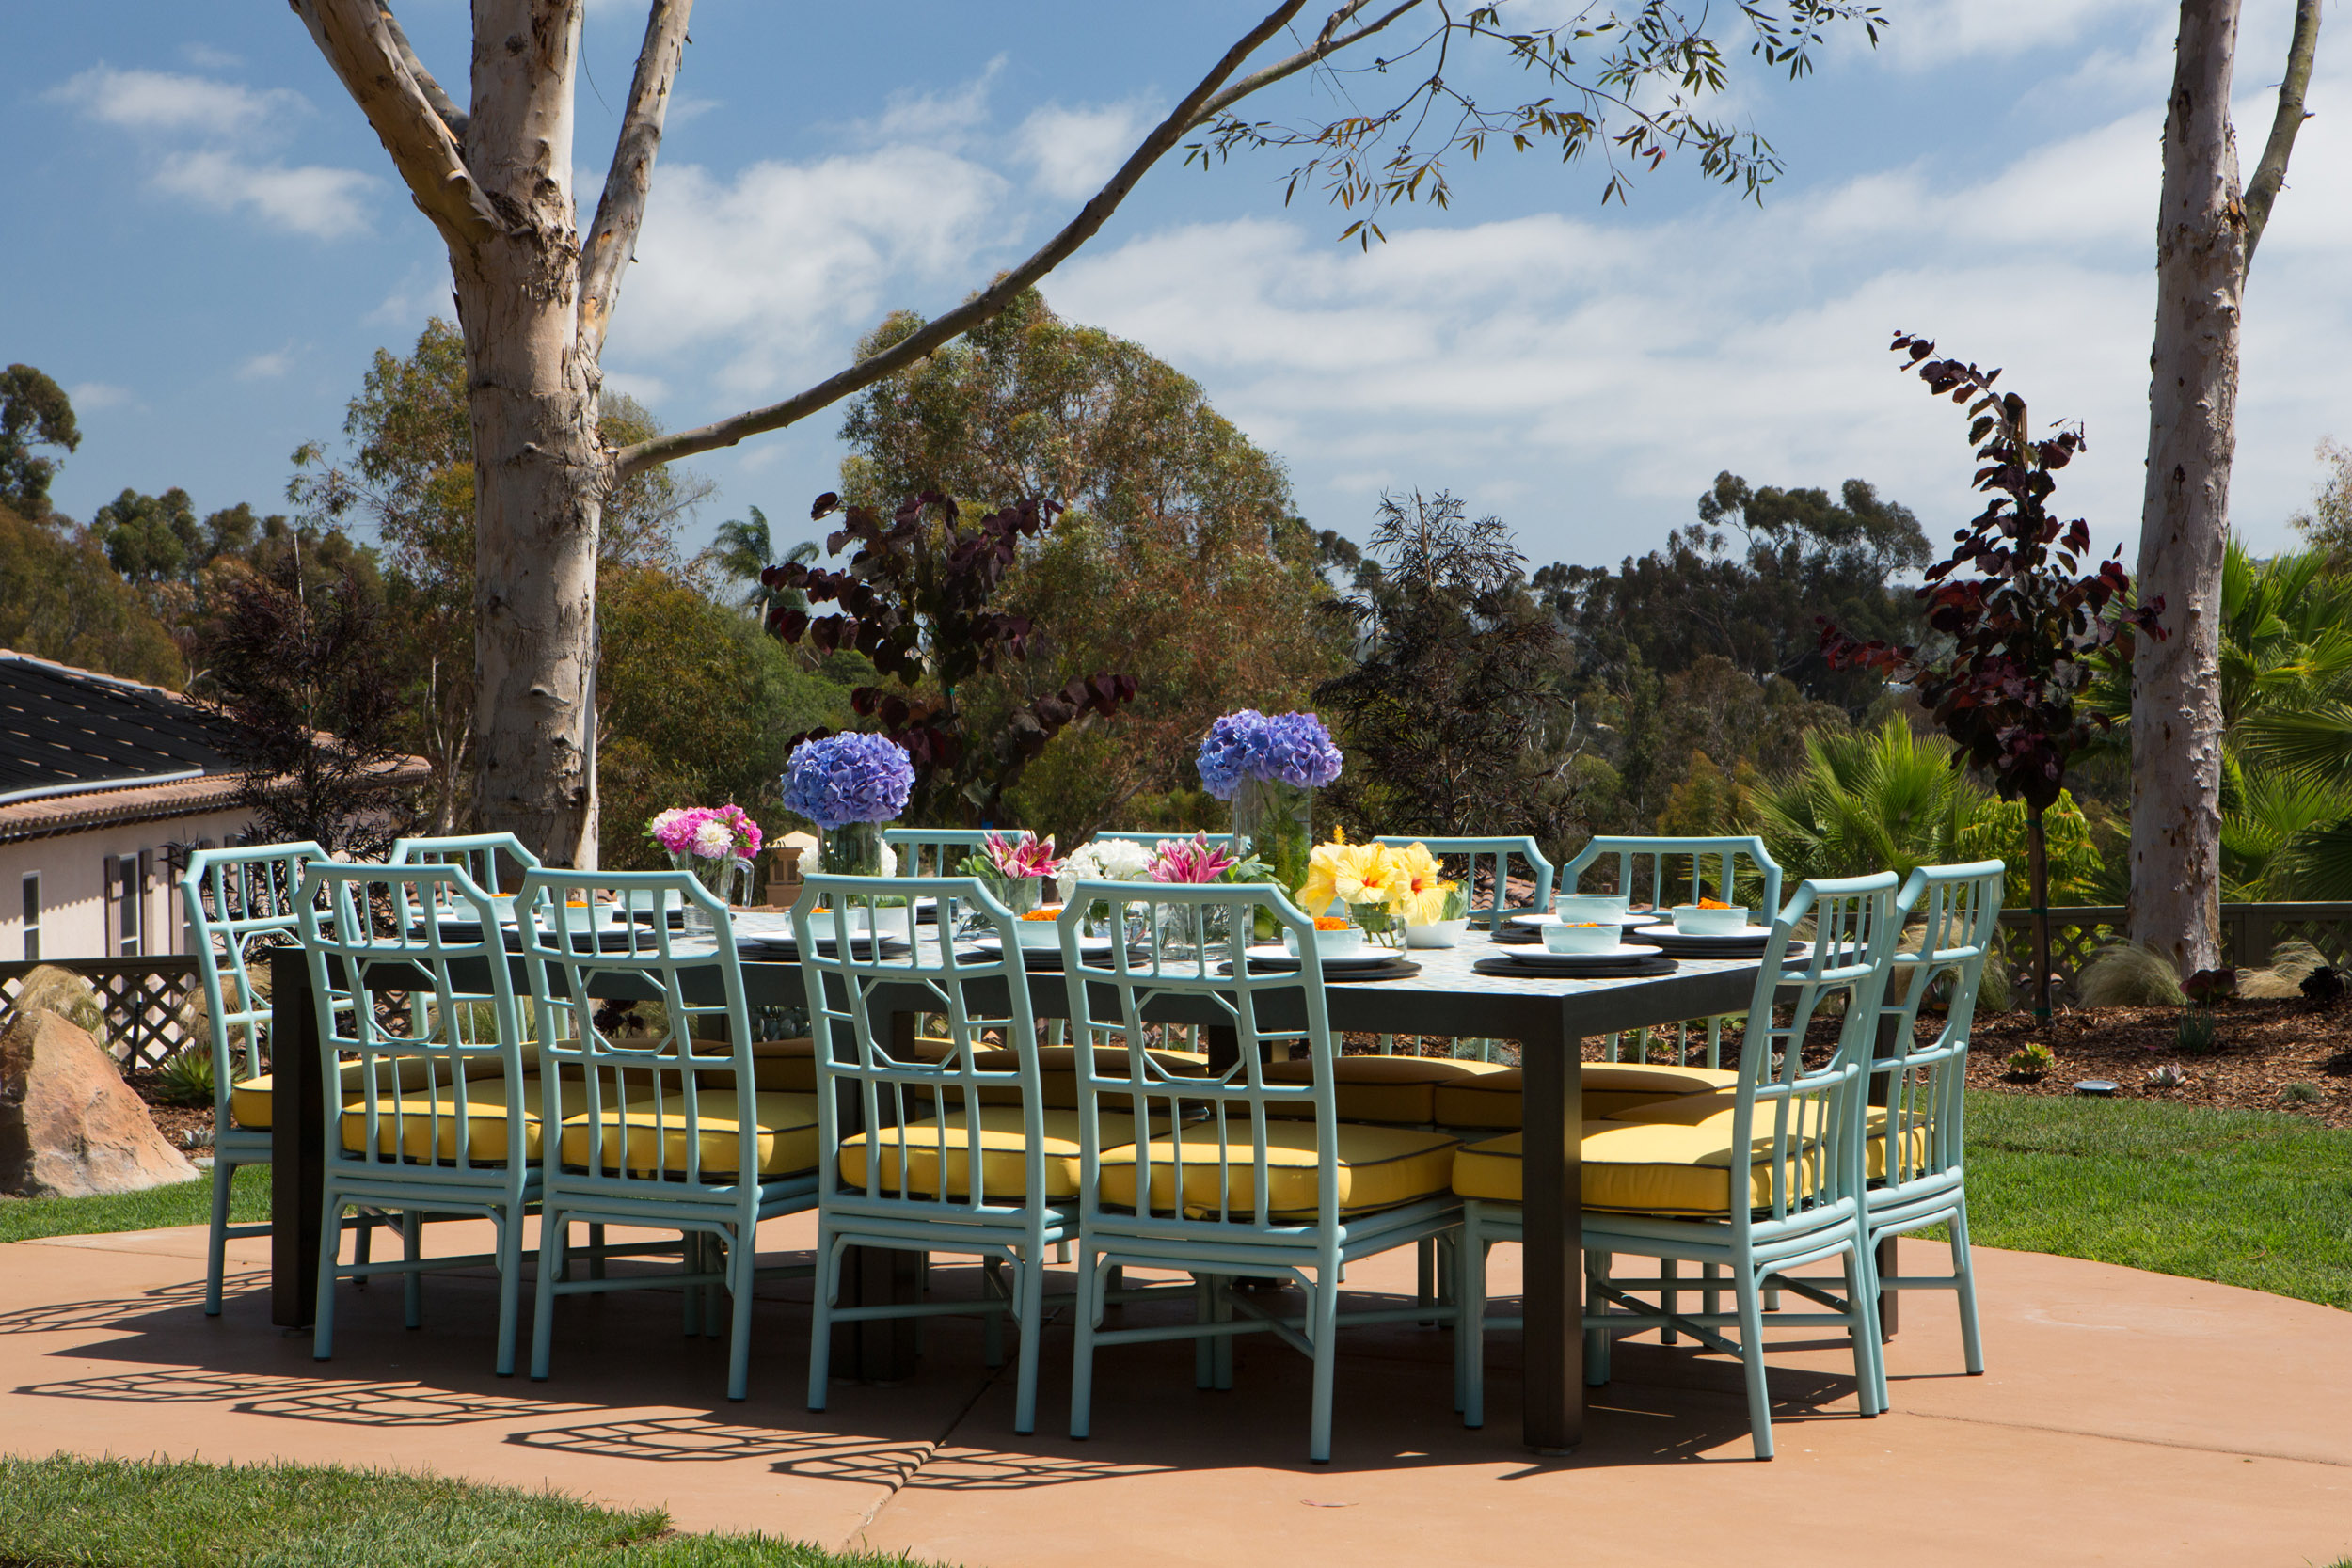 Spring Outdoor Dining Tablescape by Lori Dennis celebrity interior designer